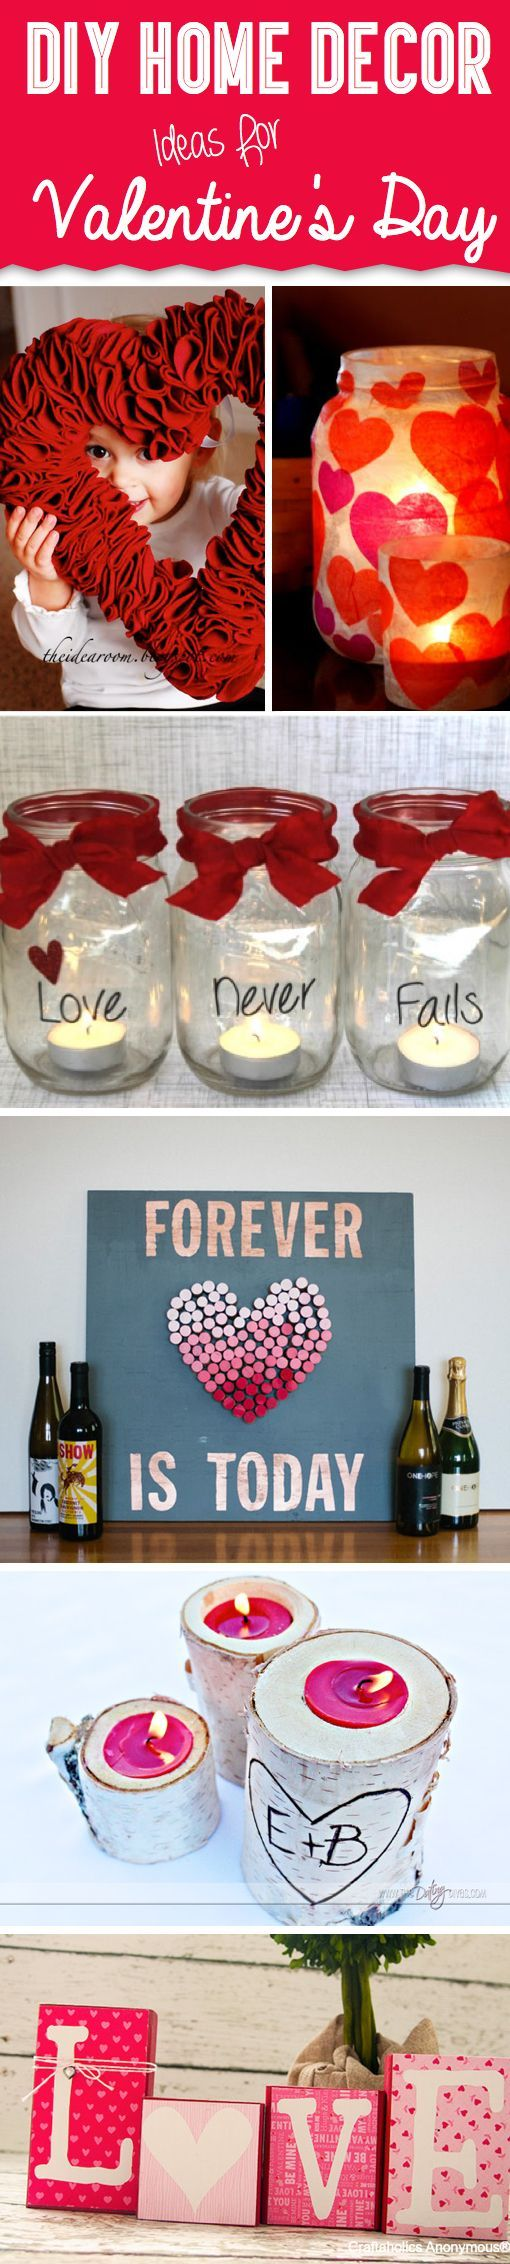 DIY Home Decor Ideas For Valentine's Day to use with Candle Impressions Flameless LED Candles.